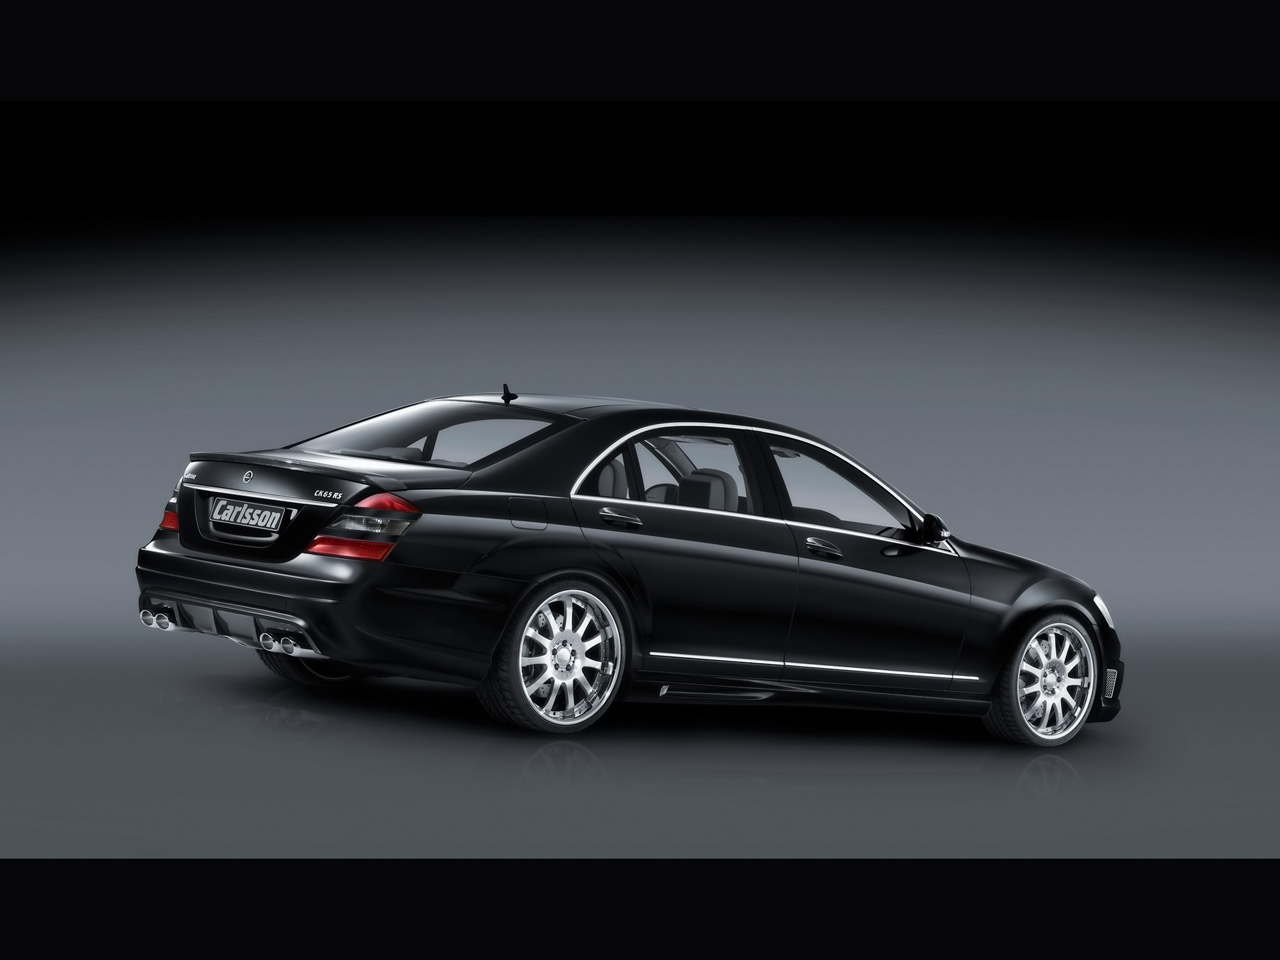 Mercedes benz models mercedes benz s class for Mercedes benz class s